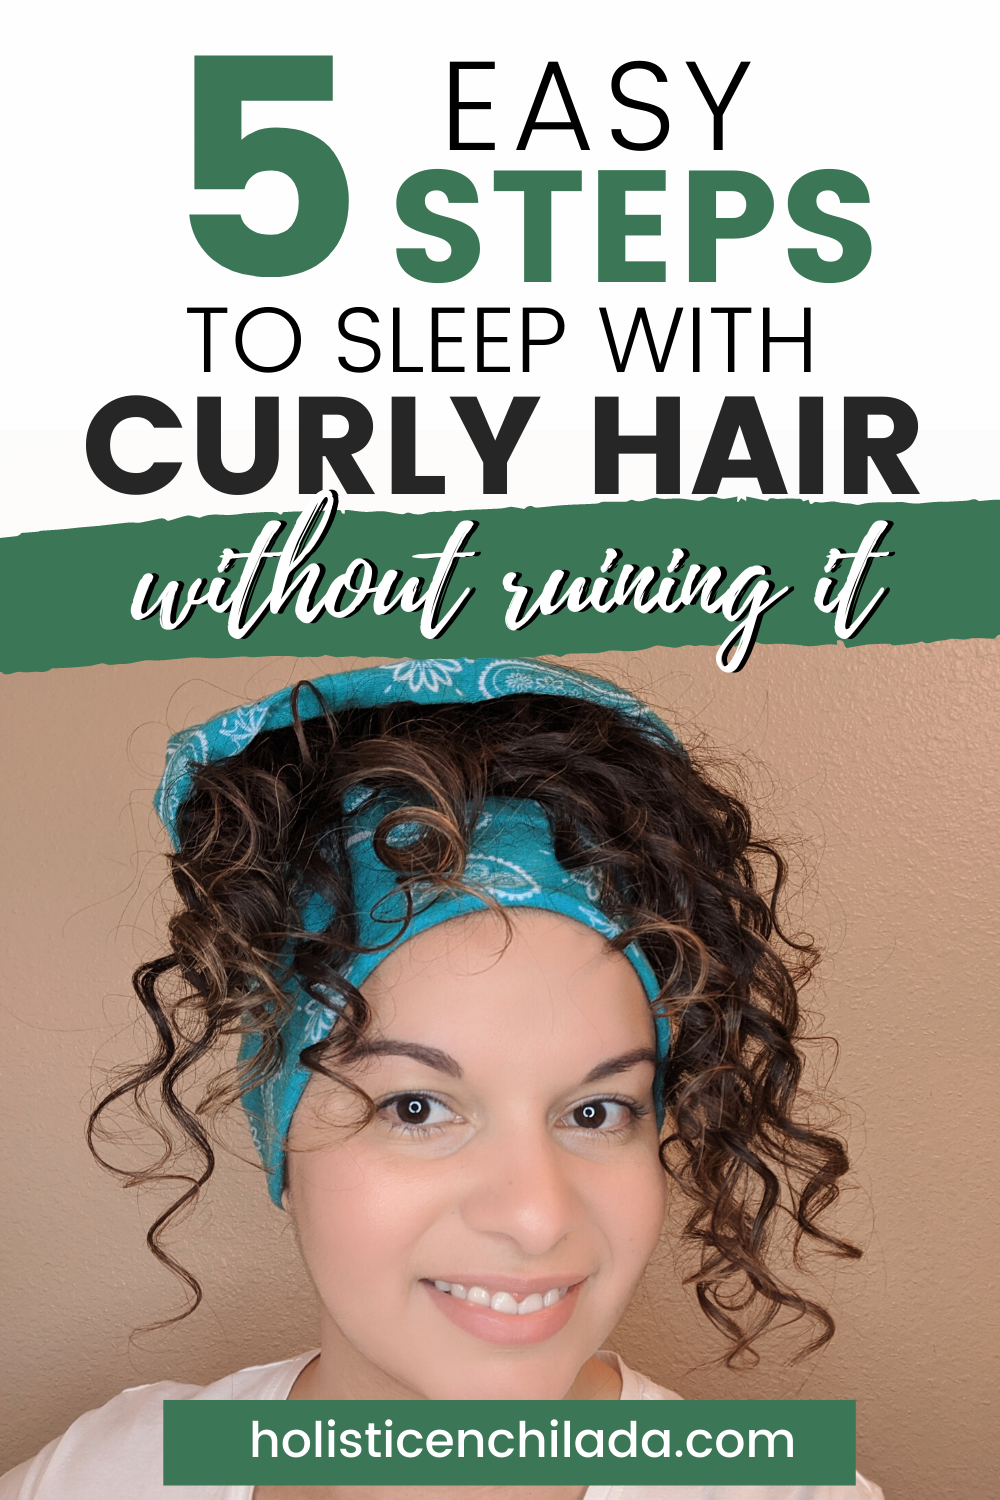 5 easy steps to sleep with curly hair without ruining it